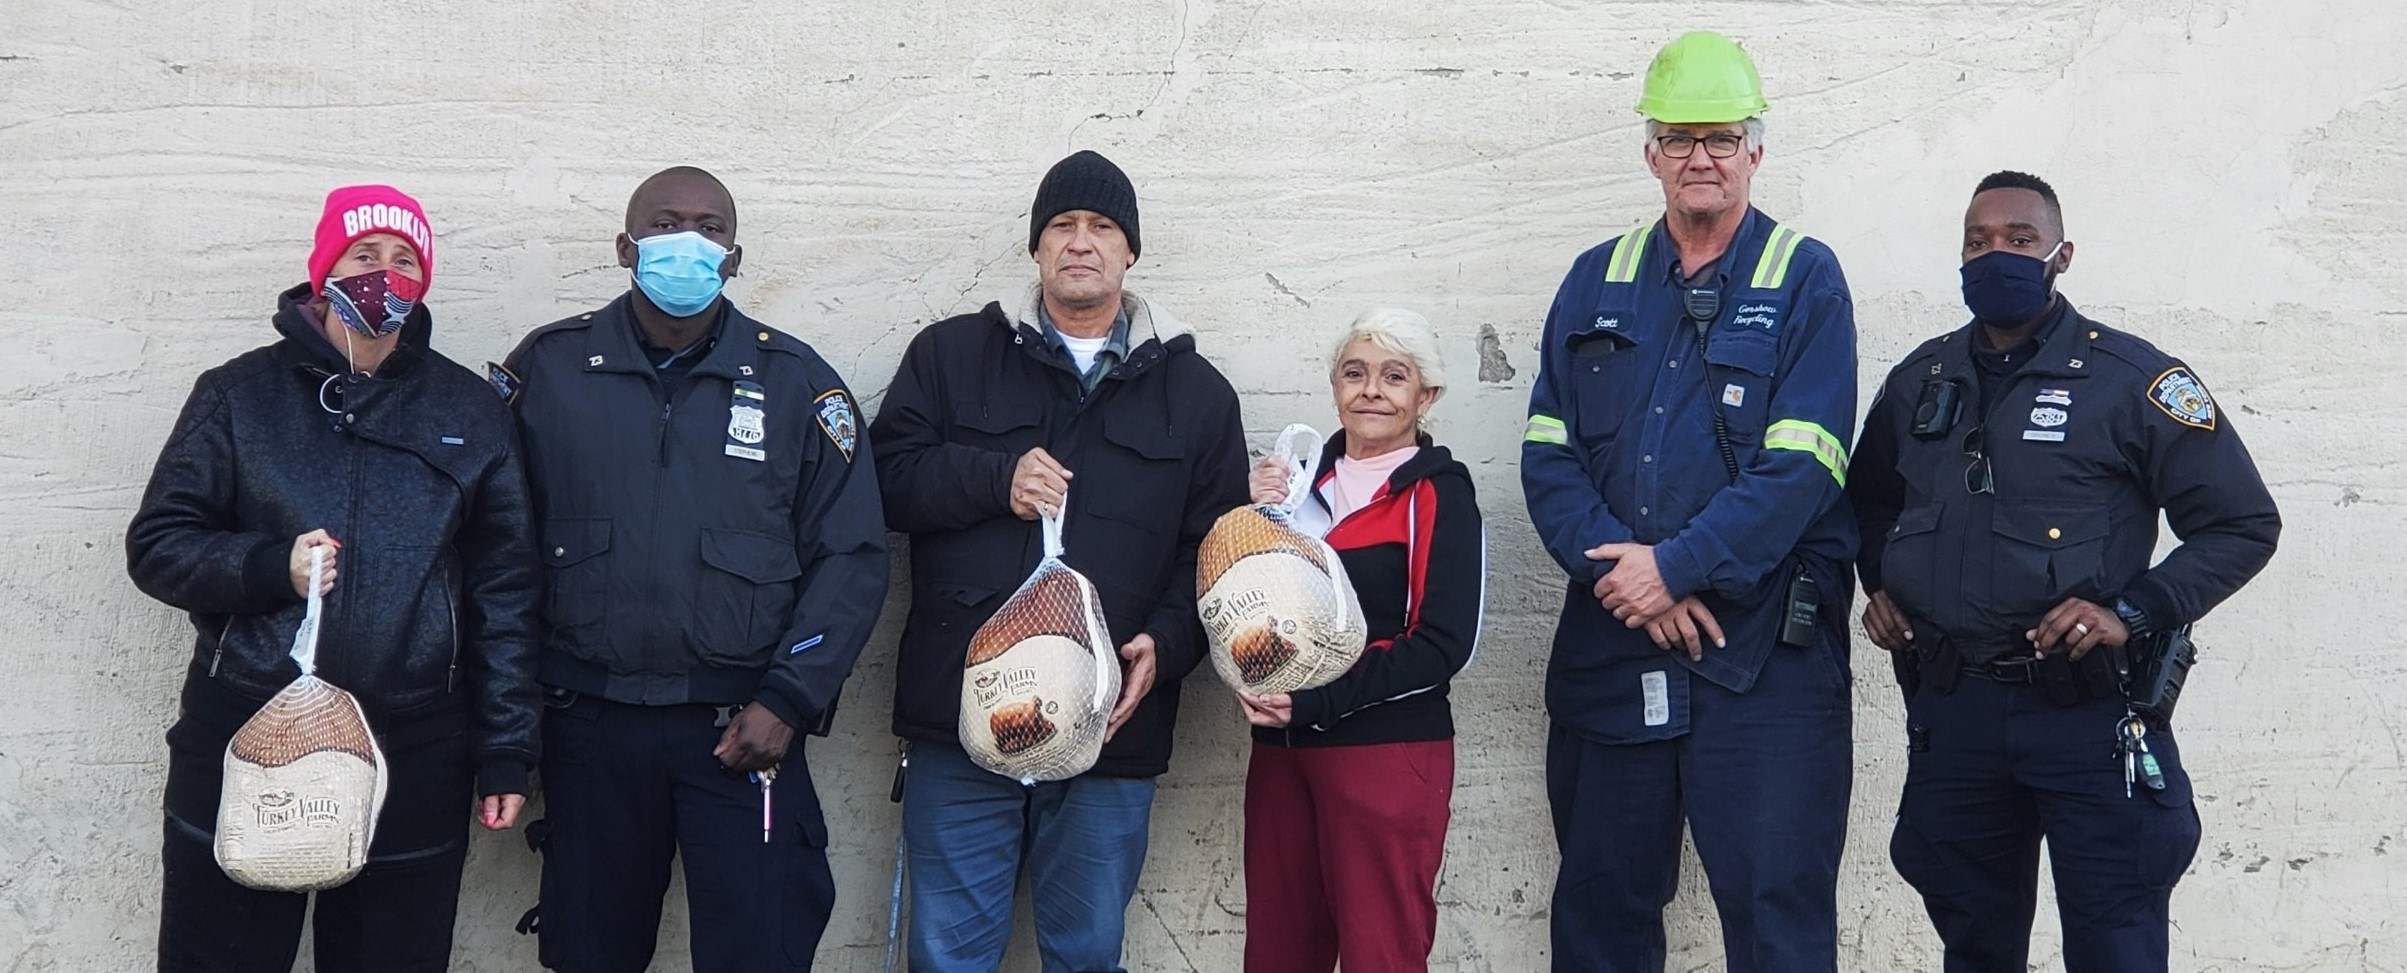 Scott Kolesari (second from right), Manager, Gershow Recycling, presented turkeys to members of NYPD's 73rd Precinct.